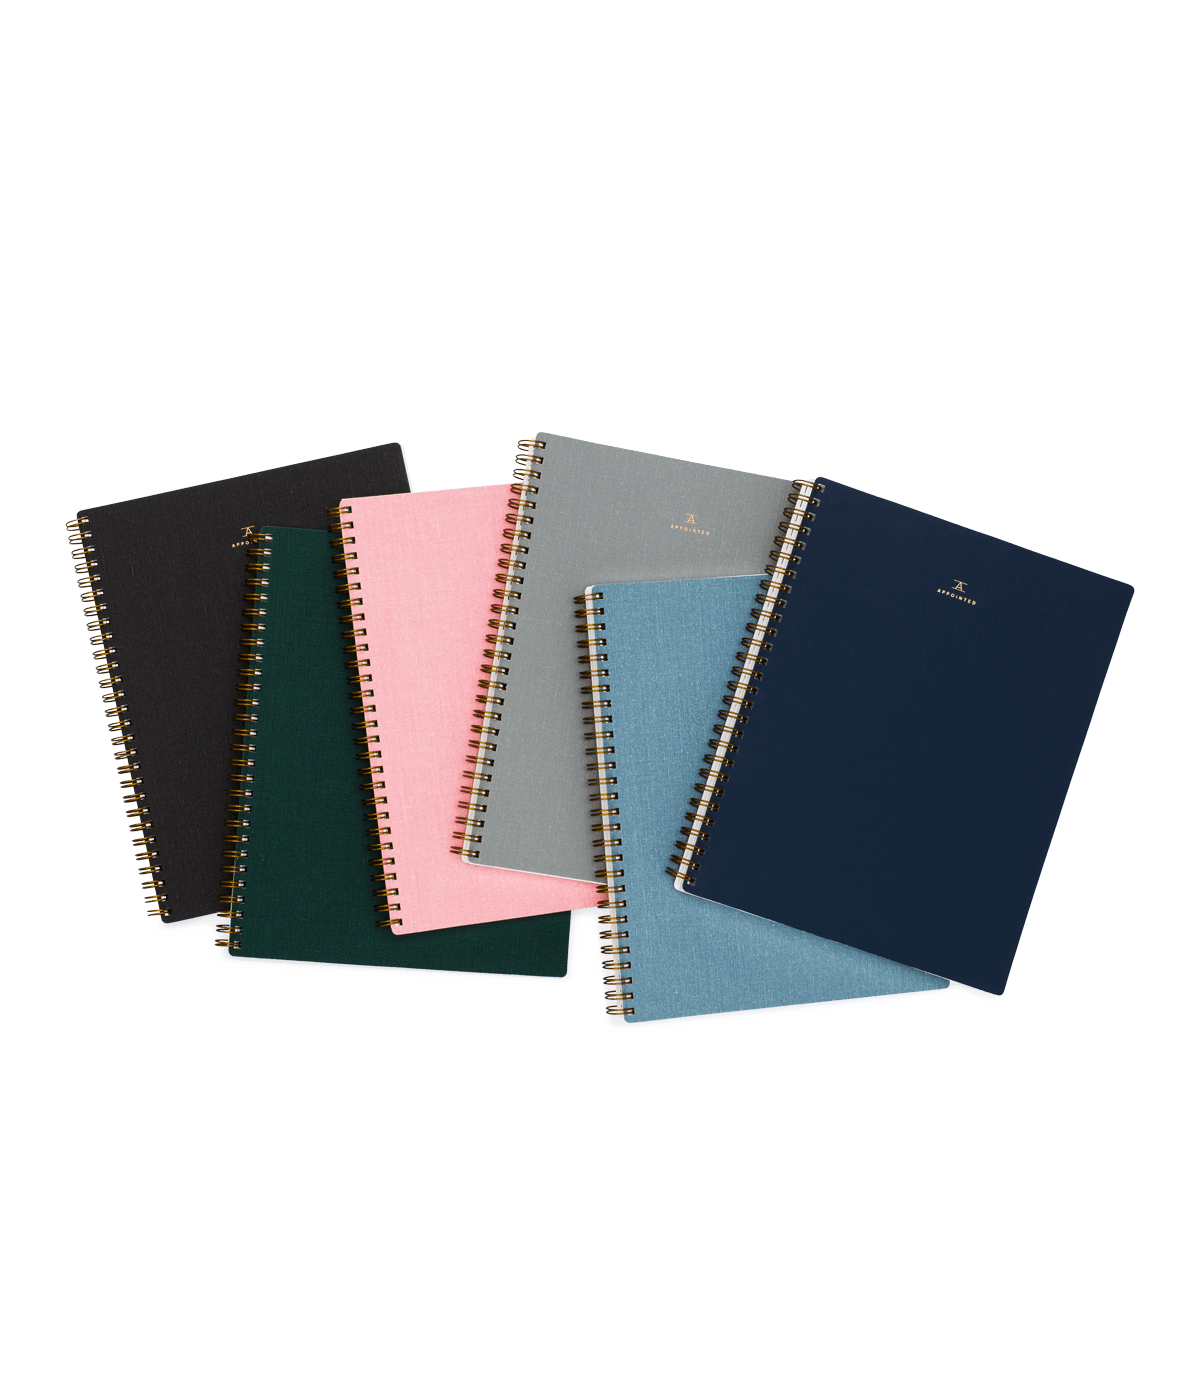 Notebooks_Notebook_Group_ea0790ee-5b89-4980-8827-1f571de9bf39_1024x1024@2x.png